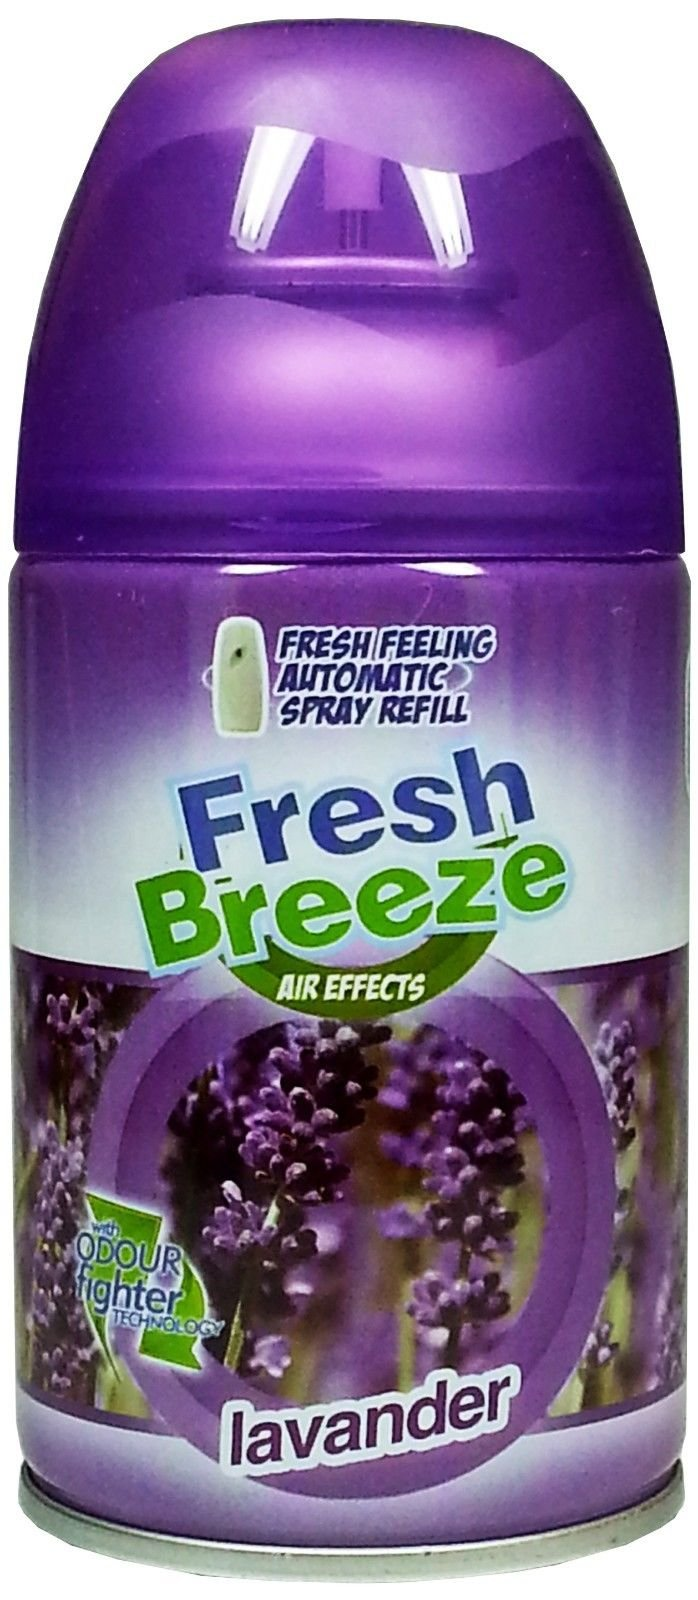 Fresh Breeze Air Freshener Spray Refills 250ml Each Pack of 20 (17 available kinds + Assorted Option)